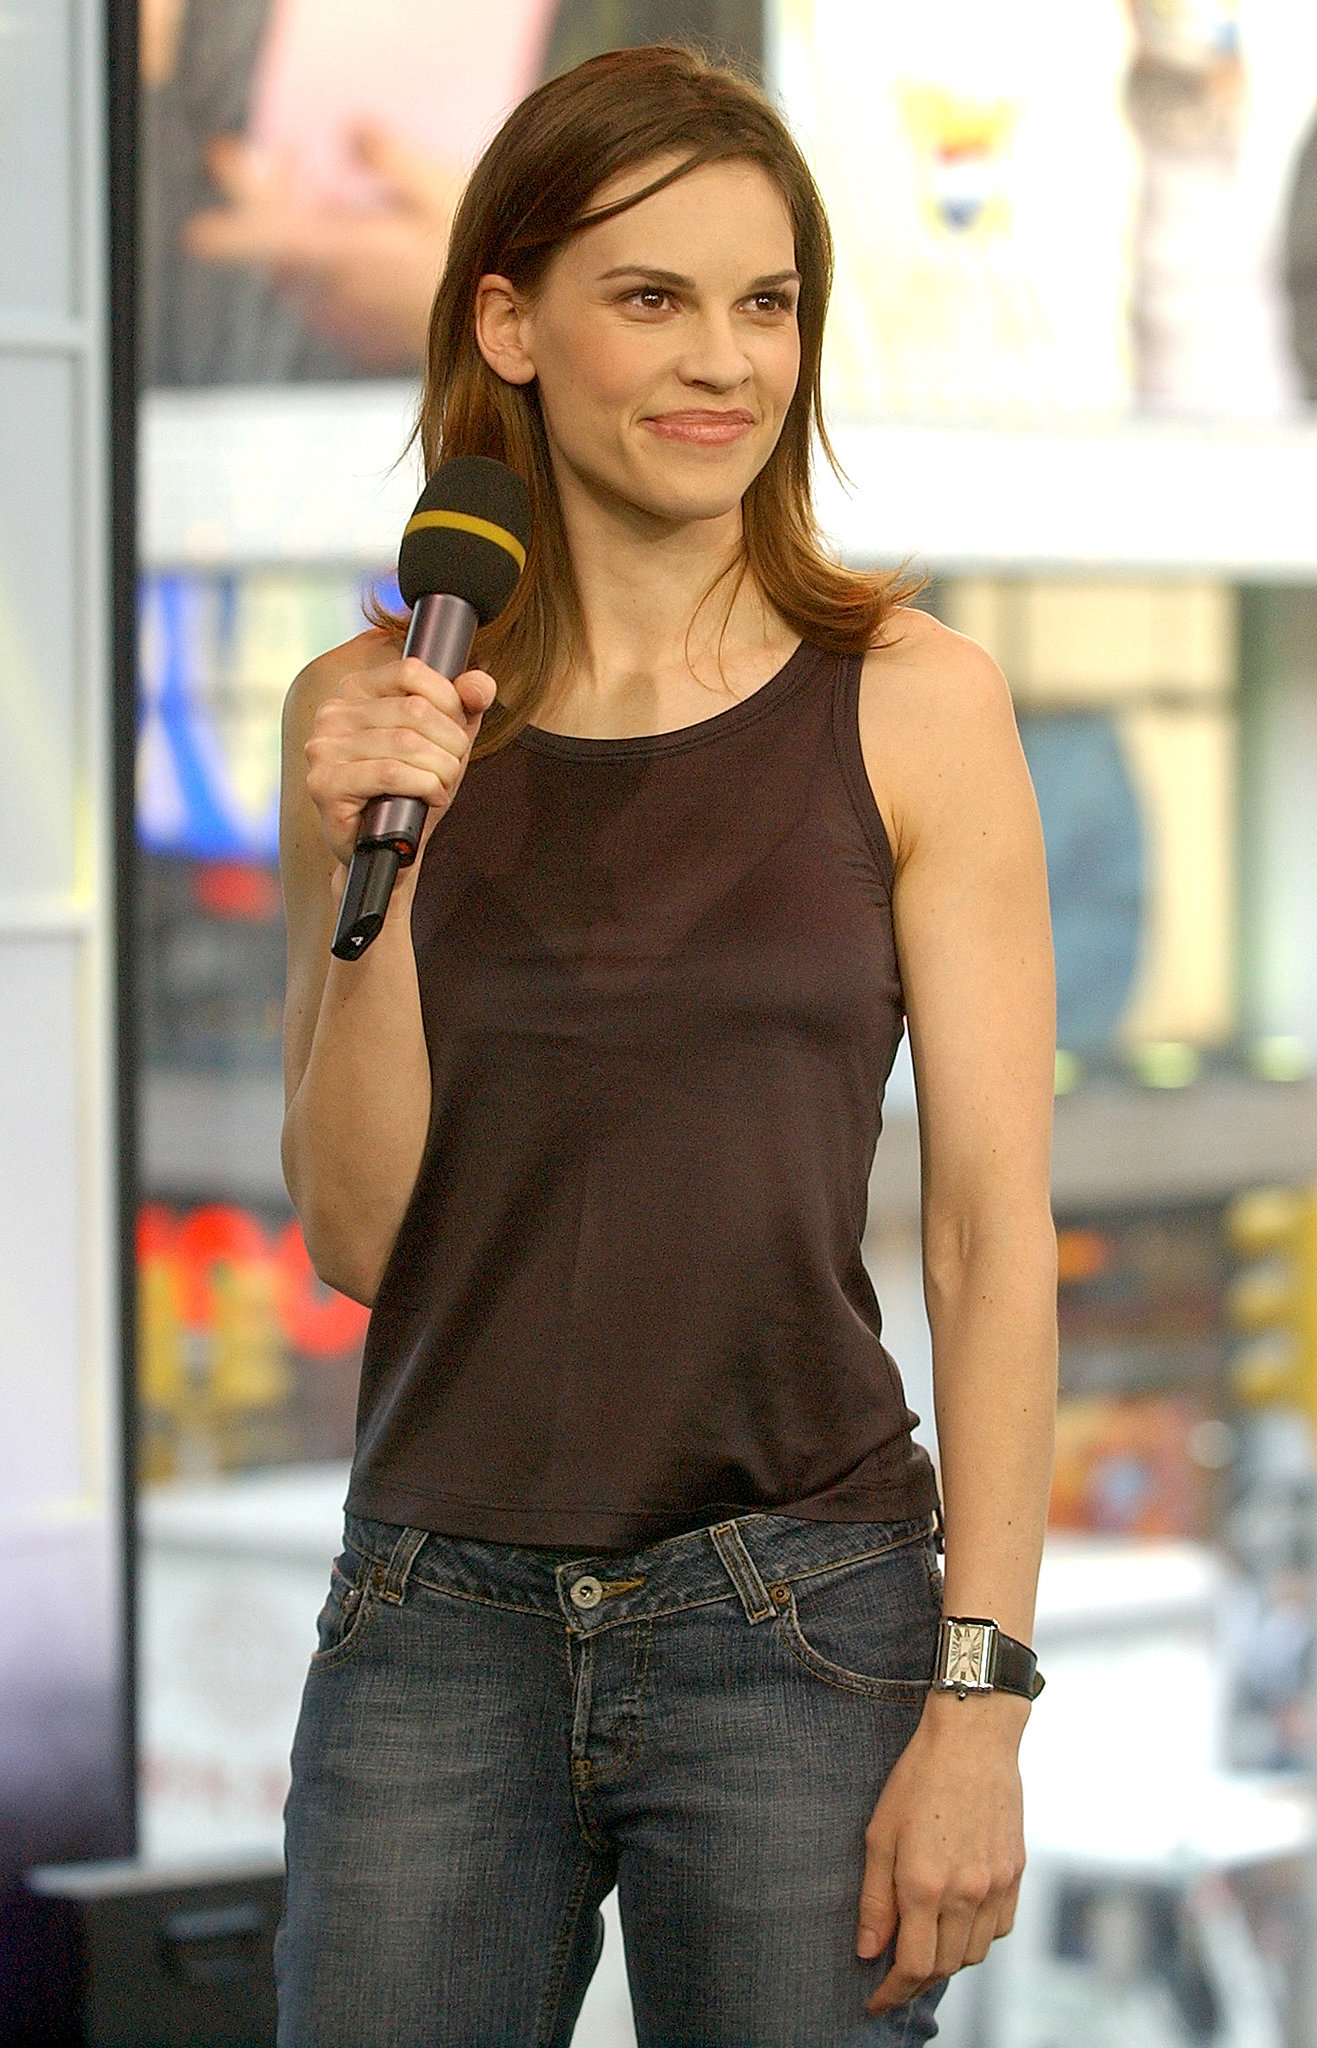 Hilary Swank jongere foto  via pinterest.com